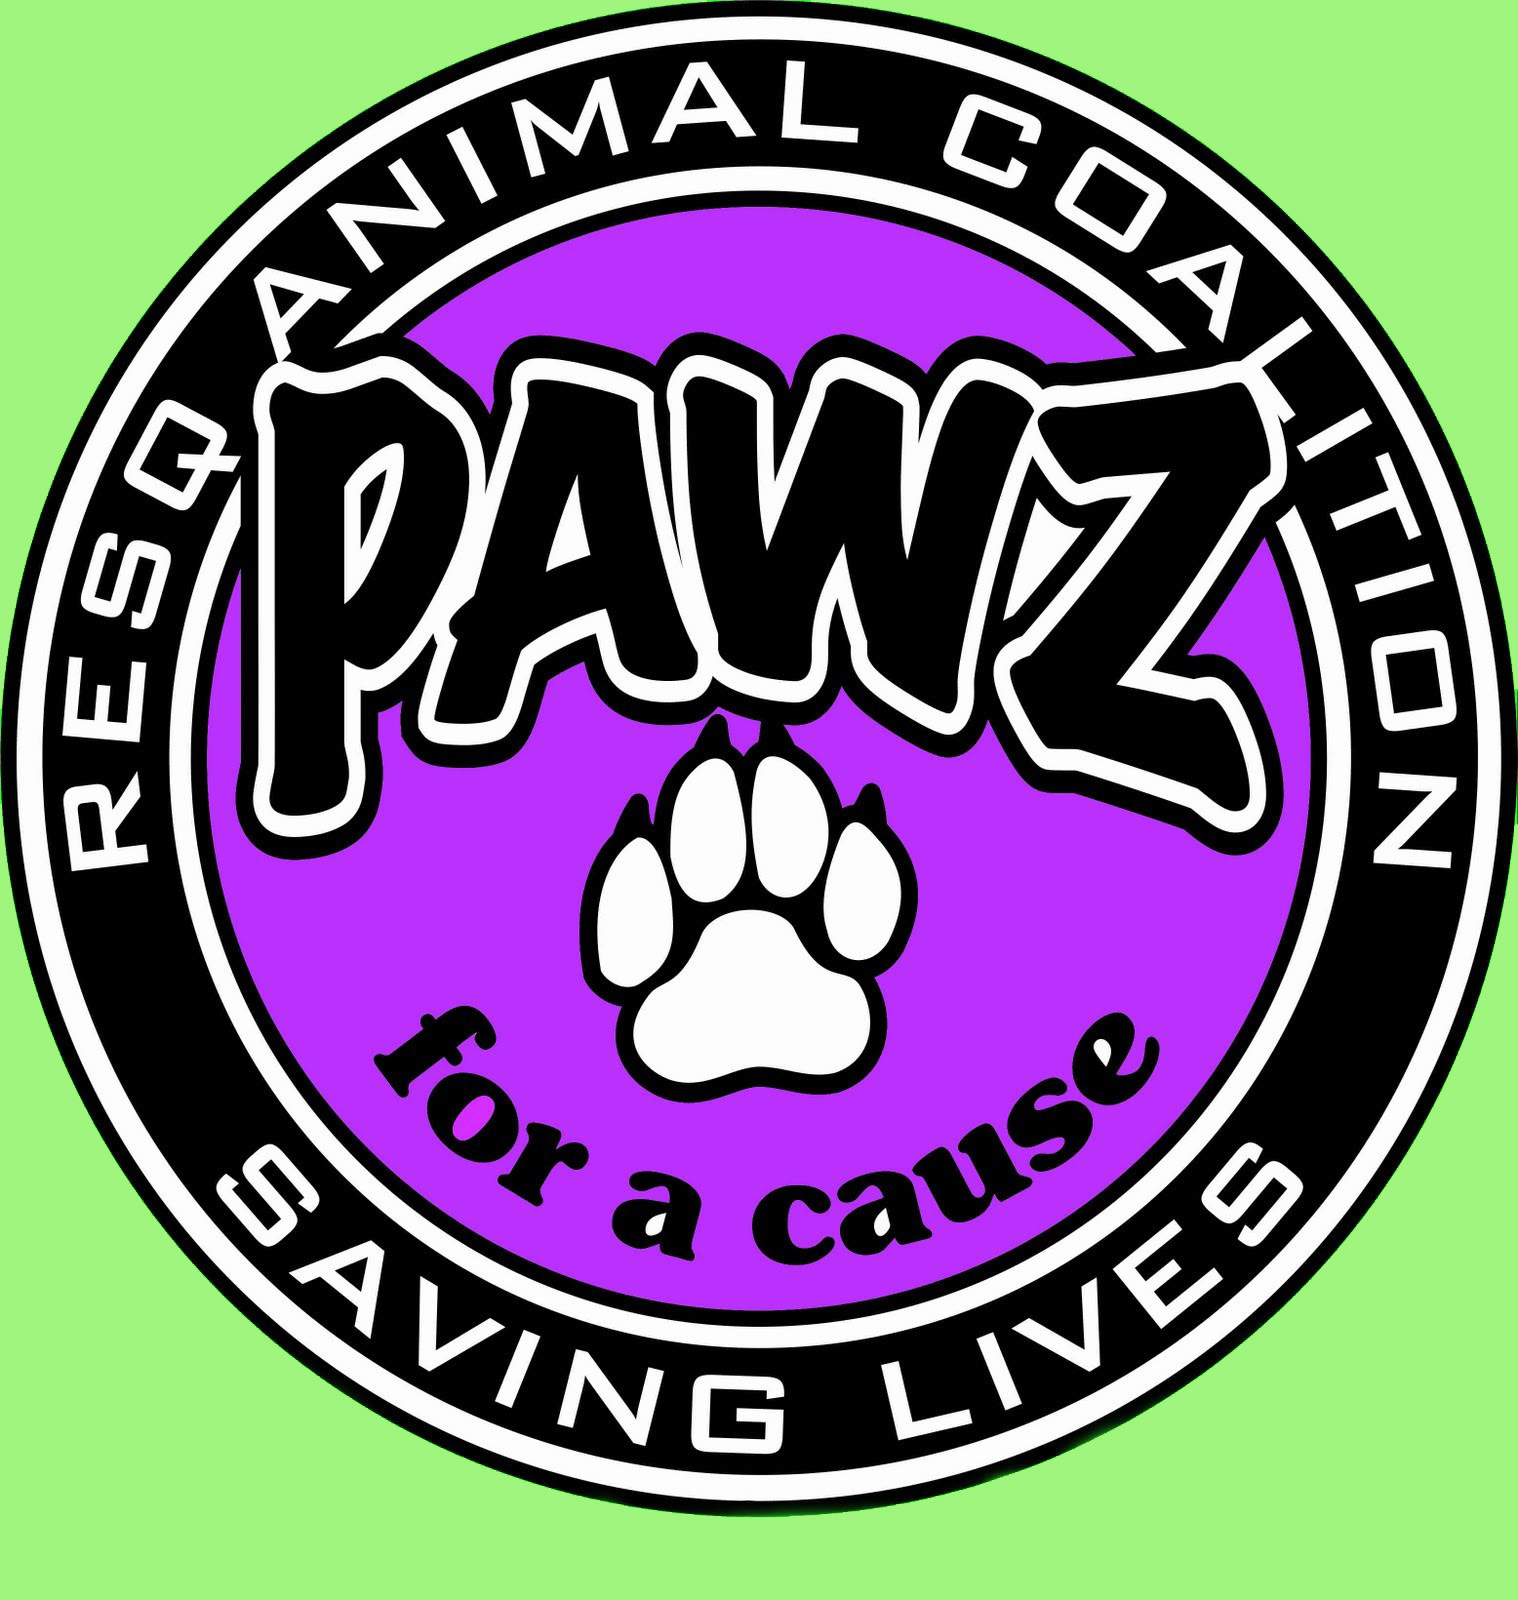 ResQ Animal Coalition